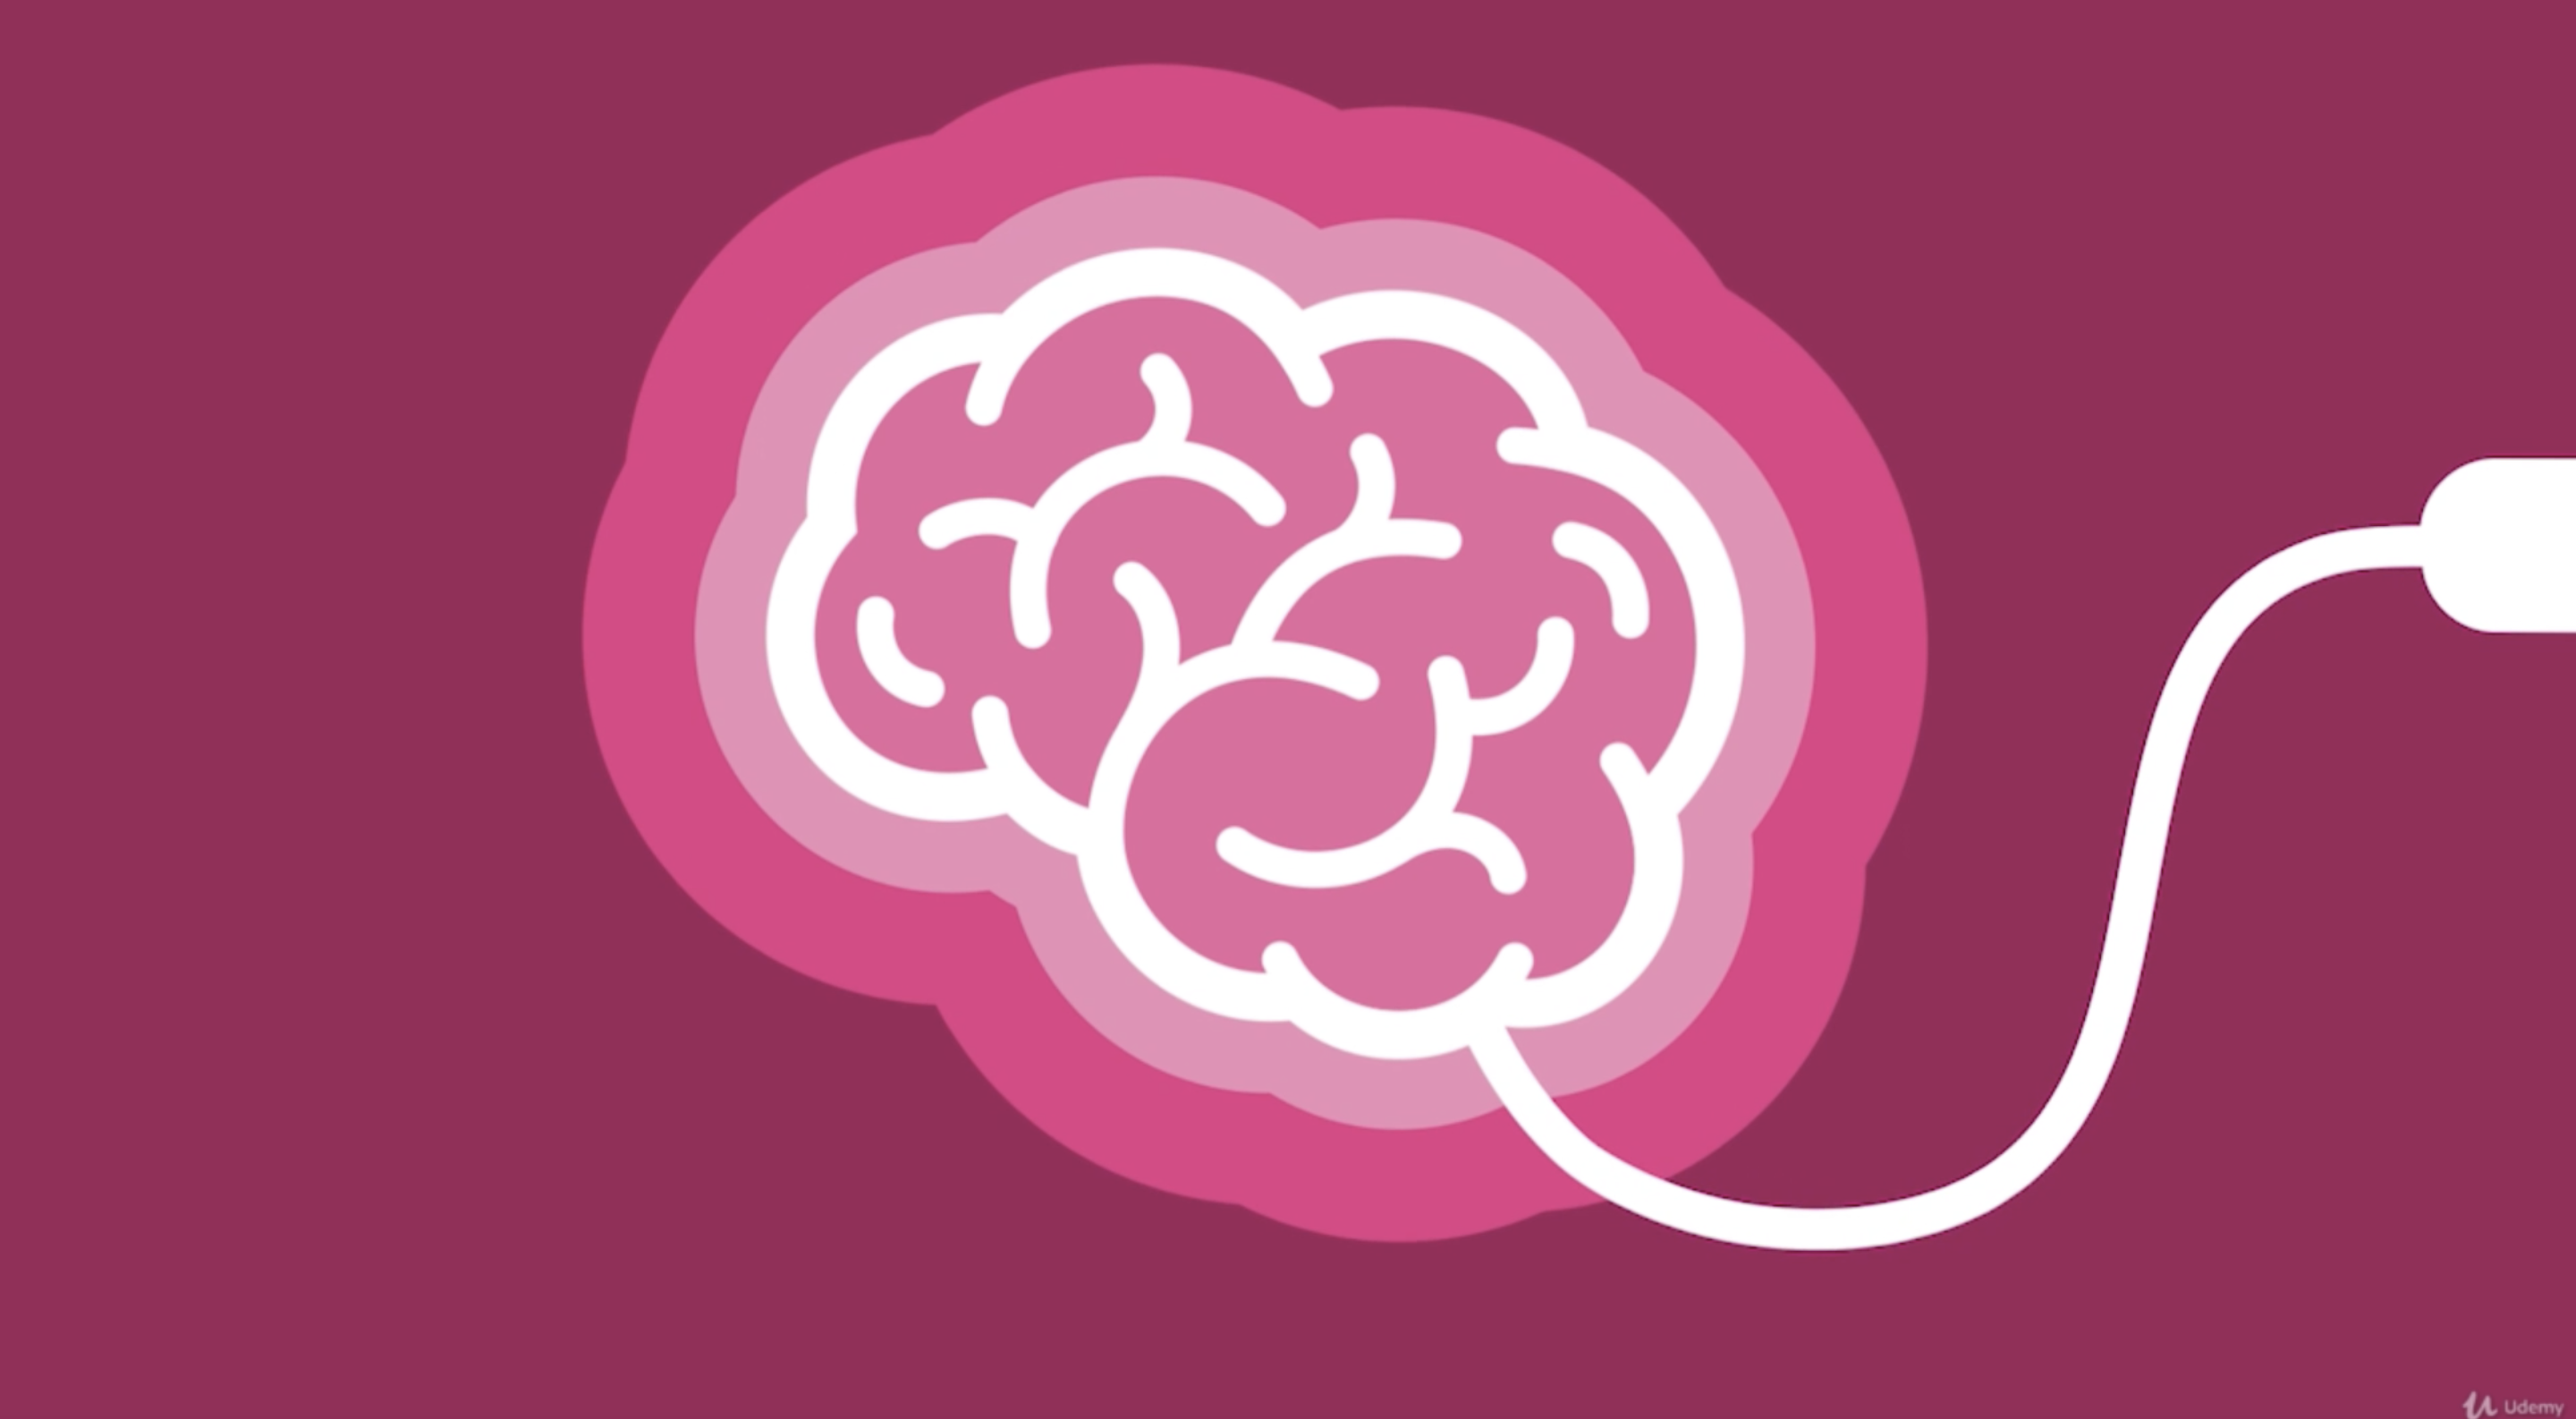 an animation of a brain plugging into an outlet